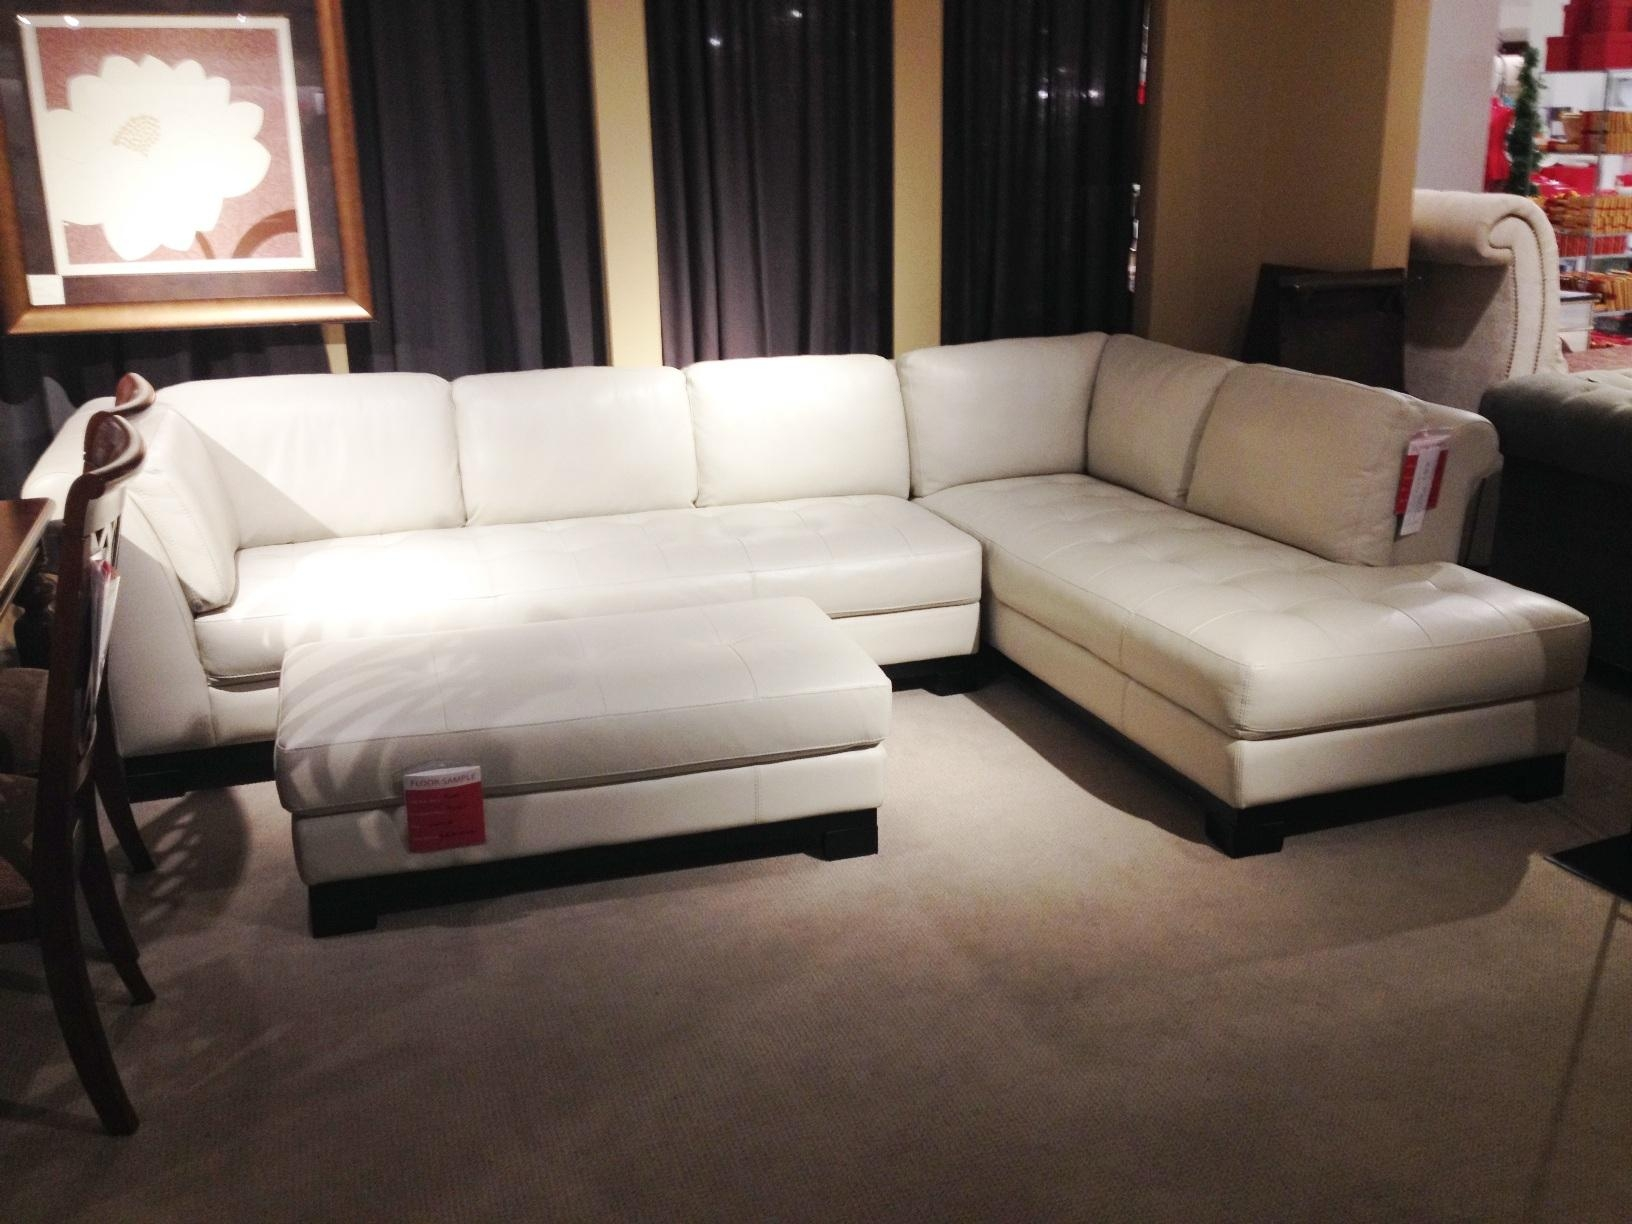 Furniture : Macys Leather Sectional Sofa Furniture Ideas White With Regard To Macys Sectional (Image 4 of 20)